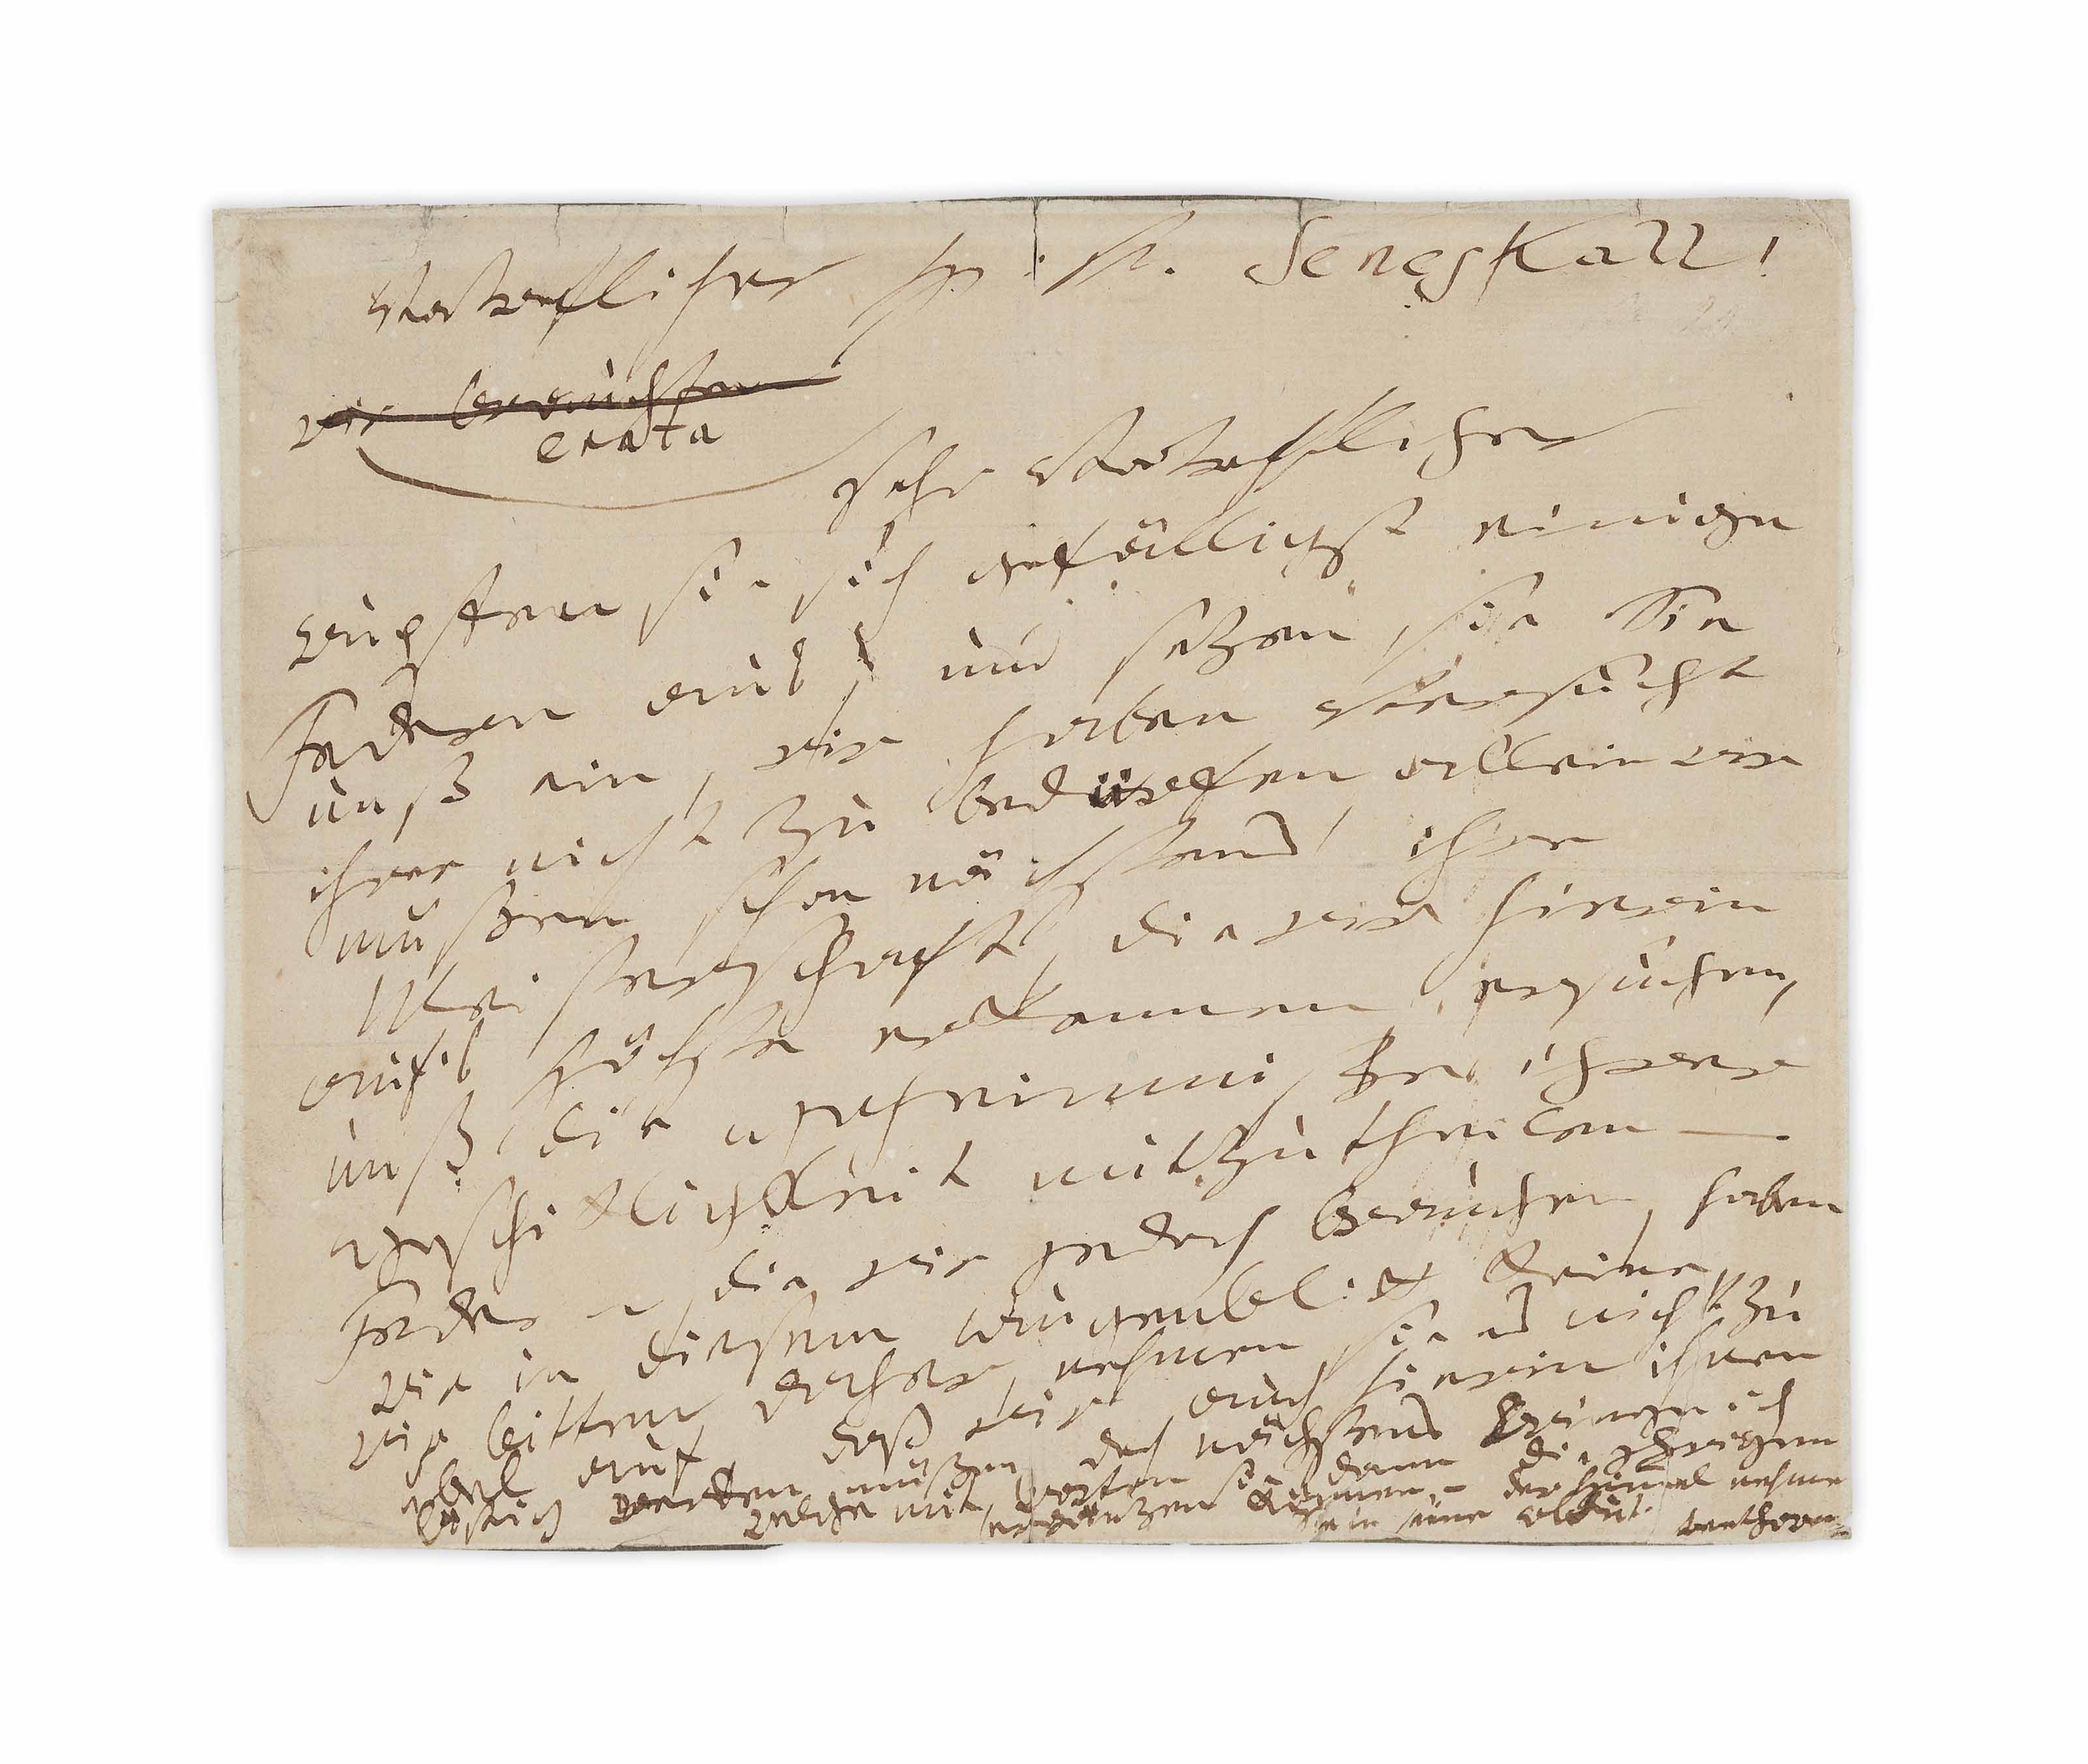 BEETHOVEN, Ludwig van (1770-1827). Autograph letter signed ('Beethoven') to [Count Nikolaus Zmeskall von Domanovecz: 'H[err] von Seneskall!') , n.p. [Vienna], n.d. [?December 1816].